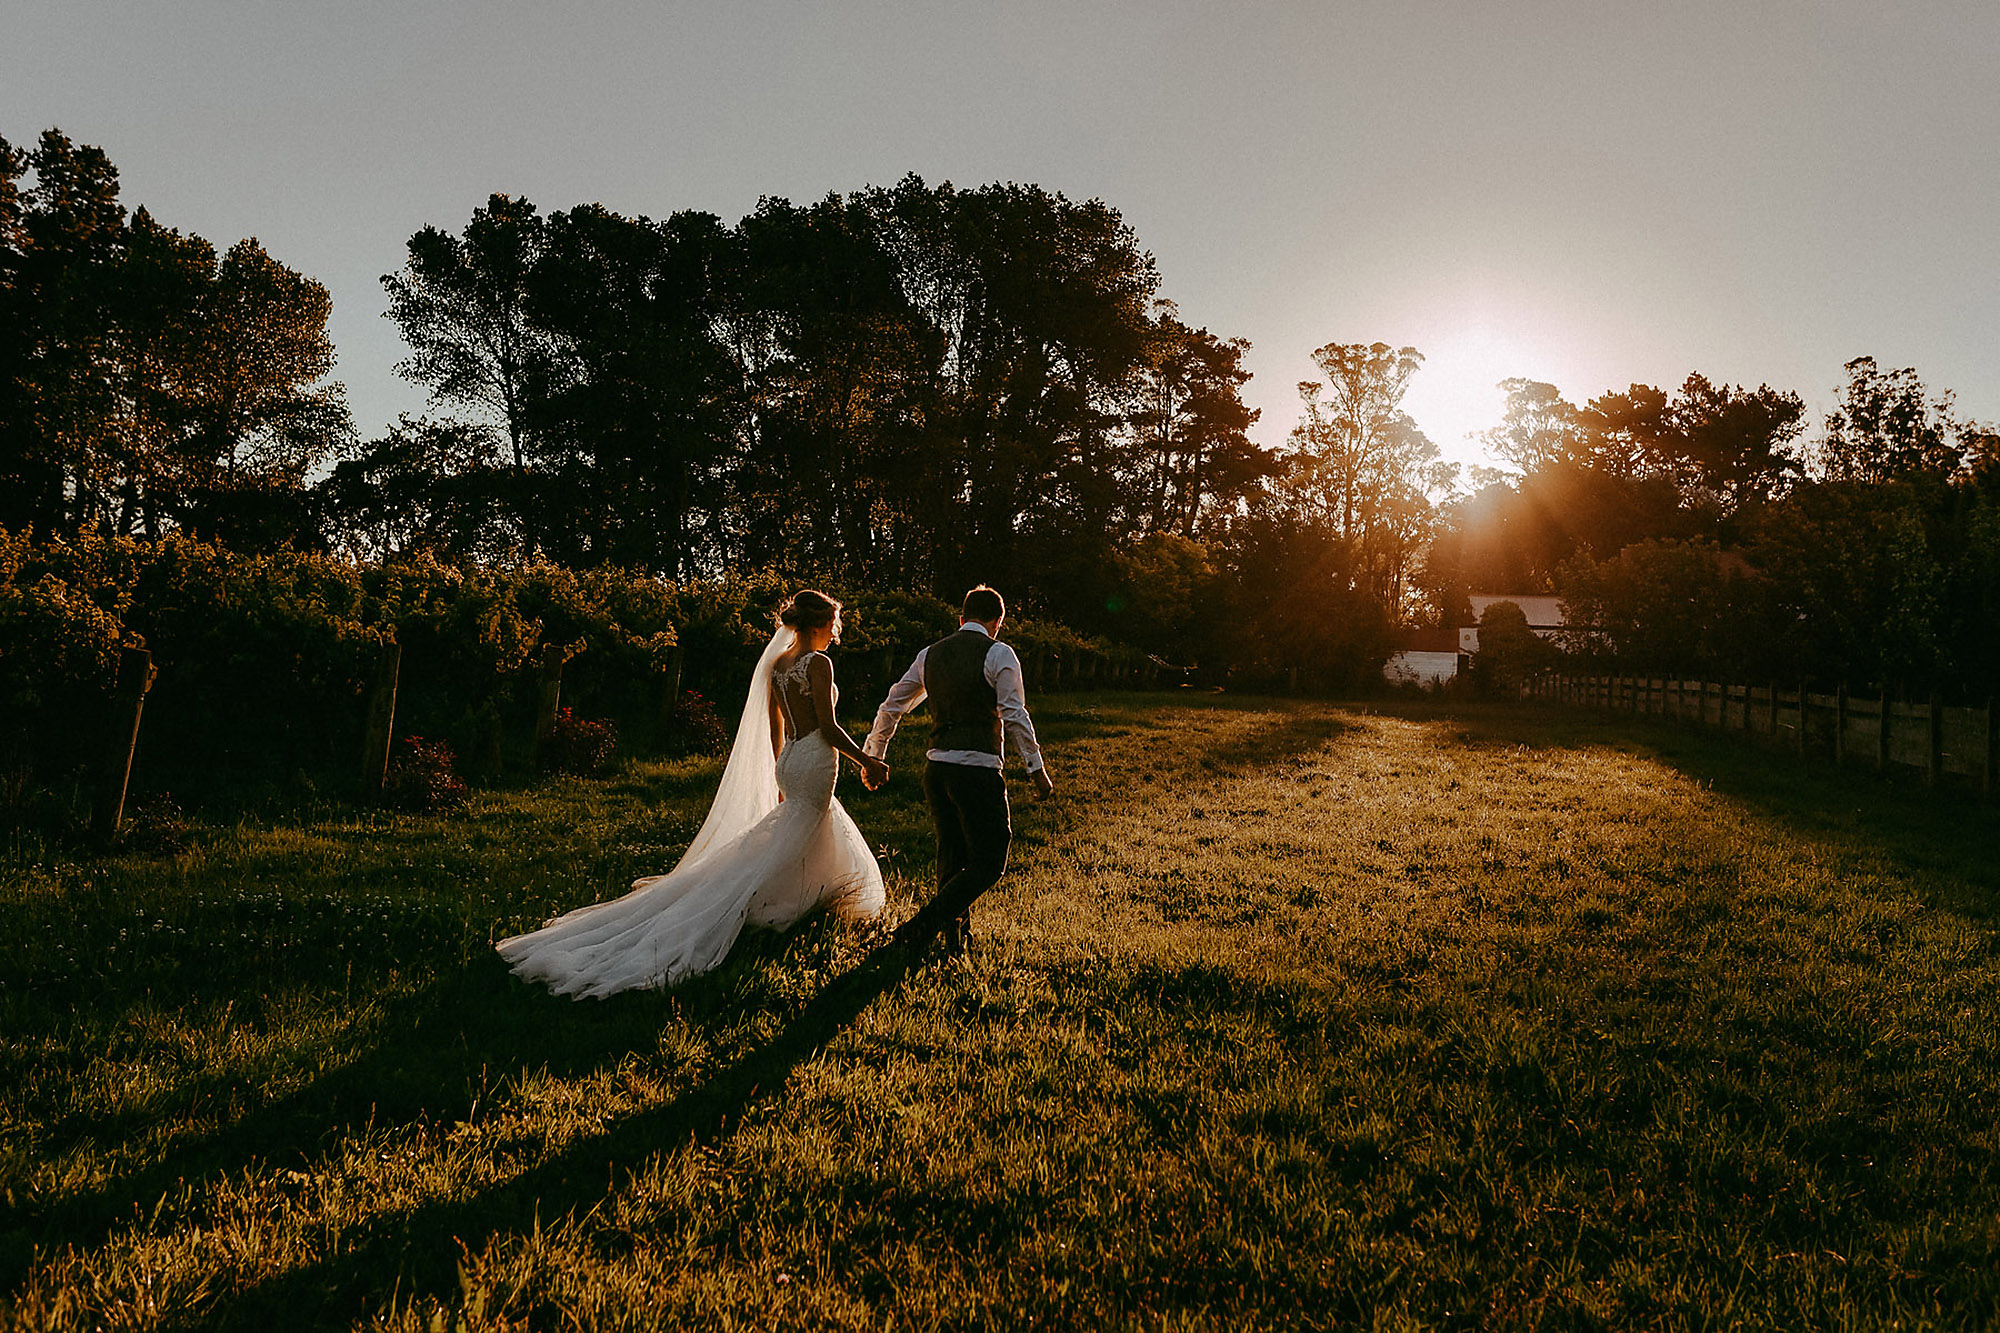 bride and groom walking in vines at sunset trents vineyard christchurch wedding photographer